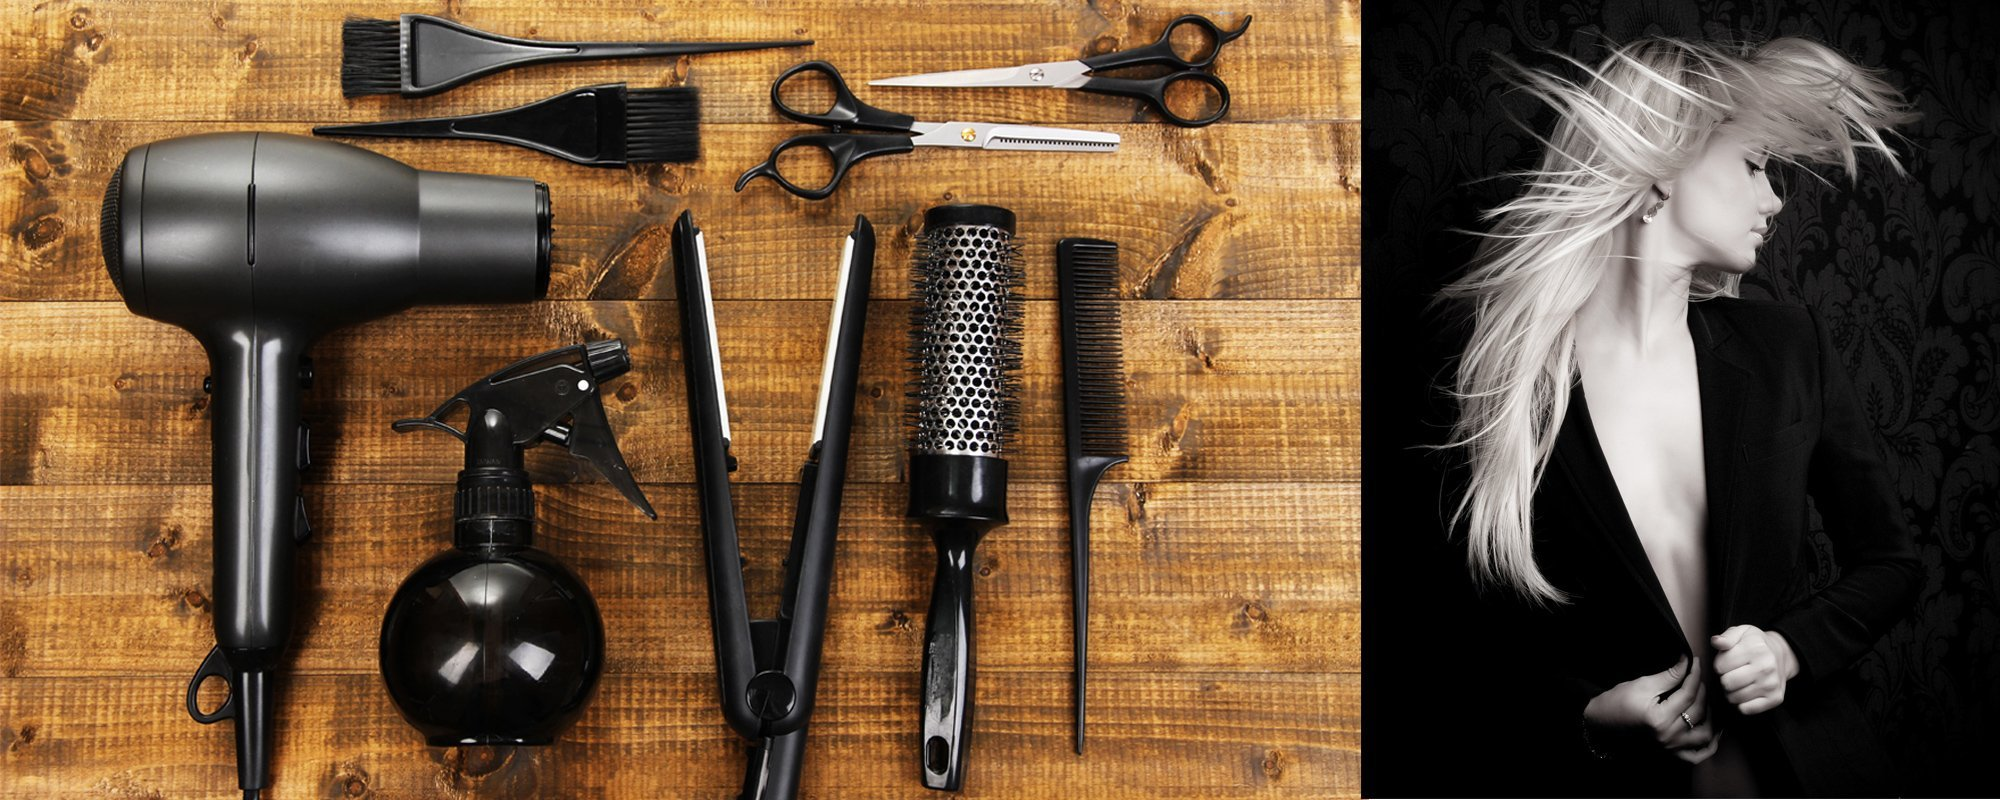 Hairdressing tools on wooden table